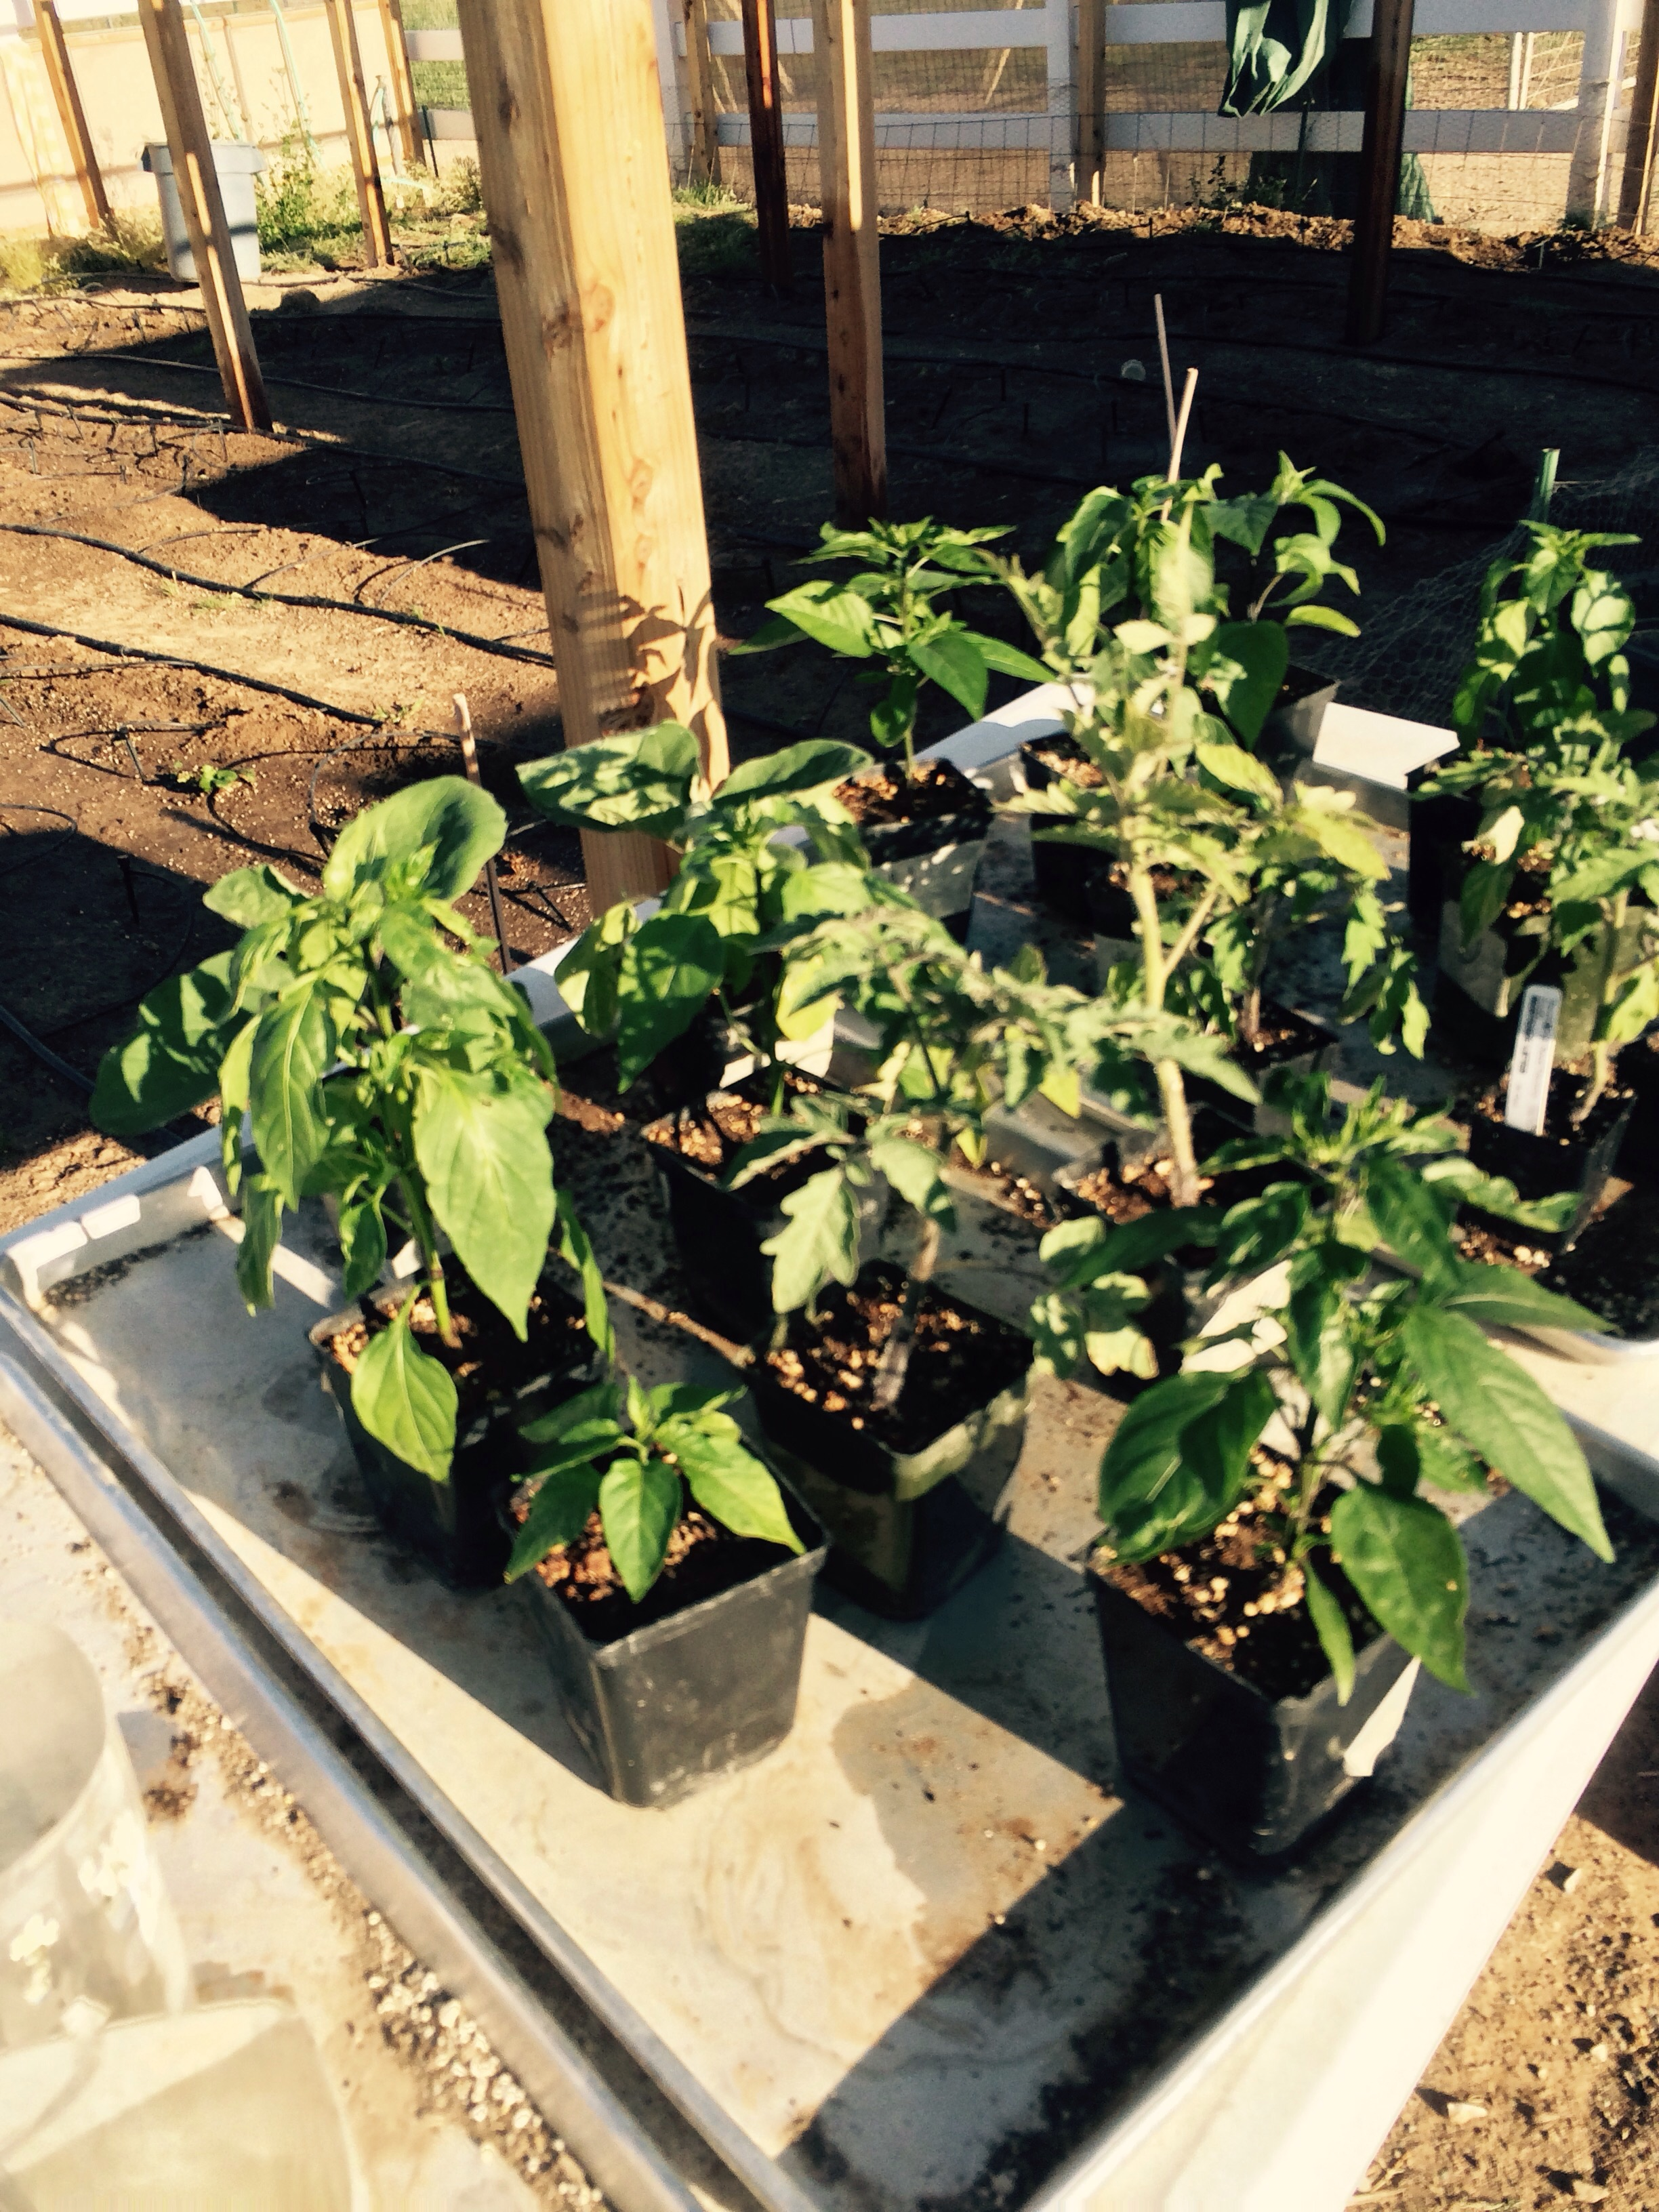 Next Sunday we will plant all our pepper and eggplant transplants never ending work and we never say we are board